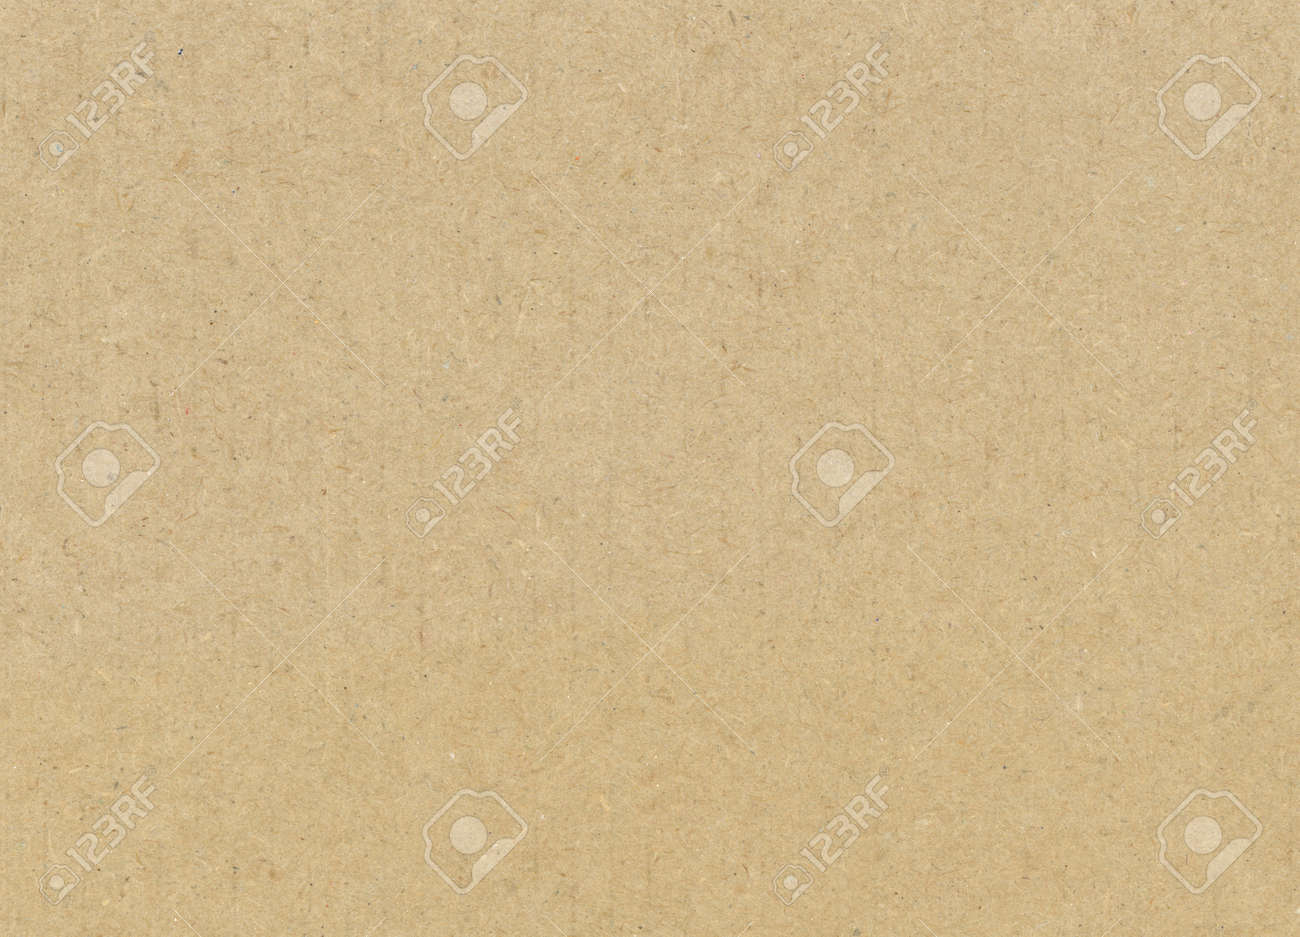 Recycle paper texture background - High resolution - 153882686